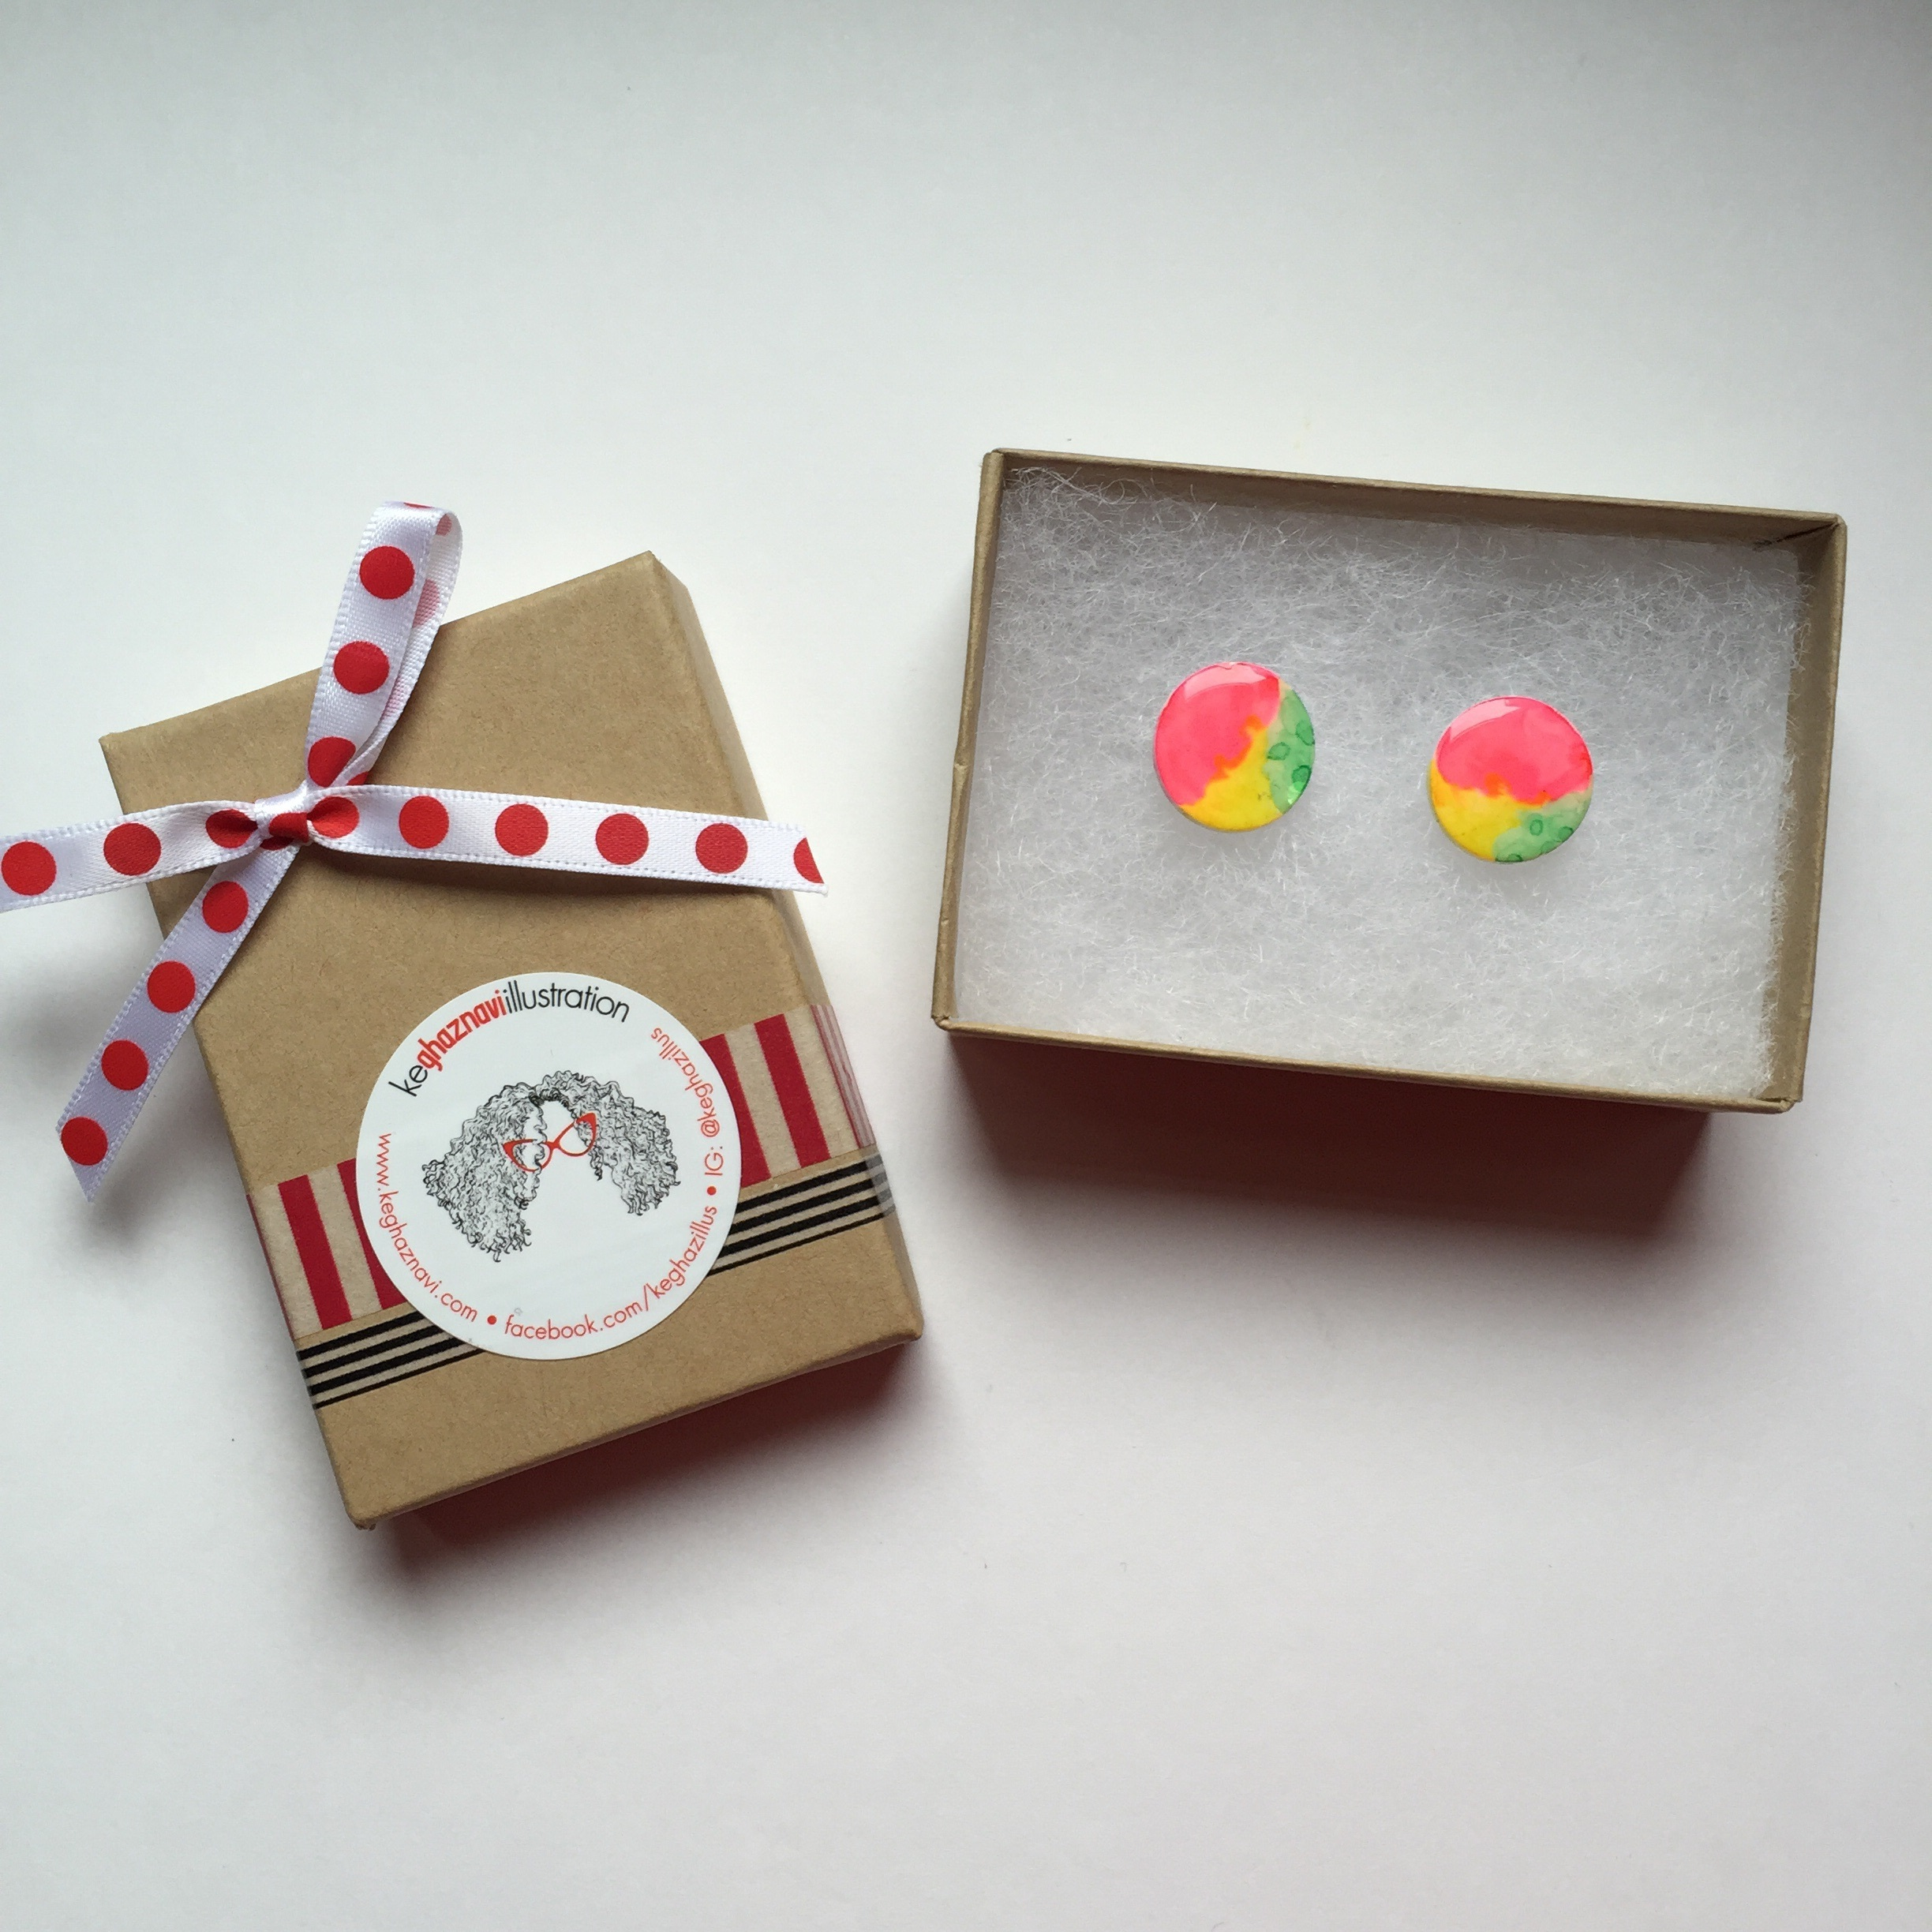 Example of packaging photo.